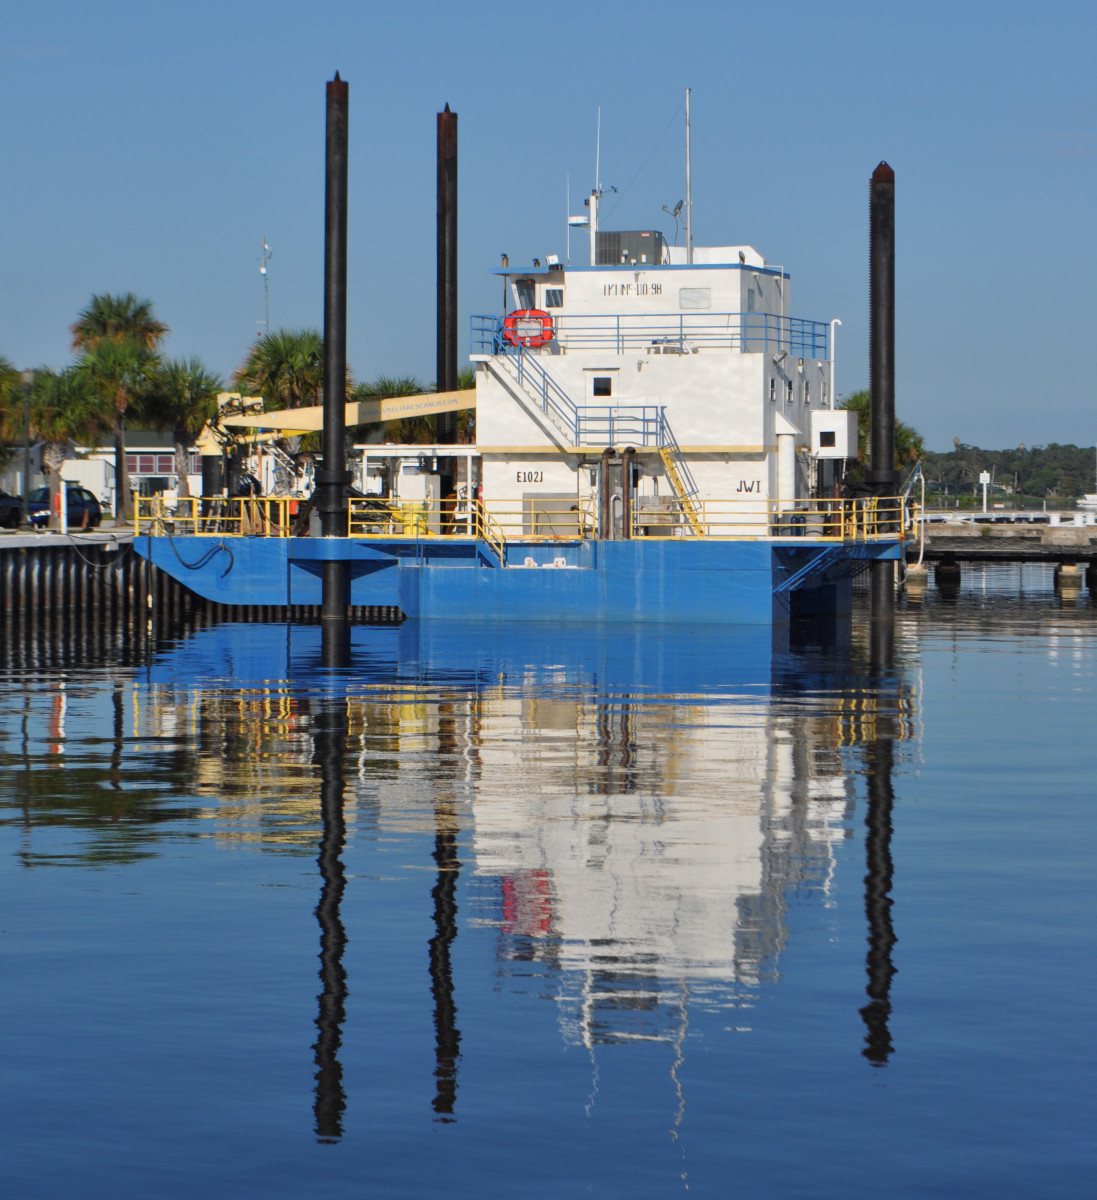 This industrial application of the same concept is a treasure hunting barge, which works the Atlantic Coast of Florida. When the waves roll in, the hull cranks up.